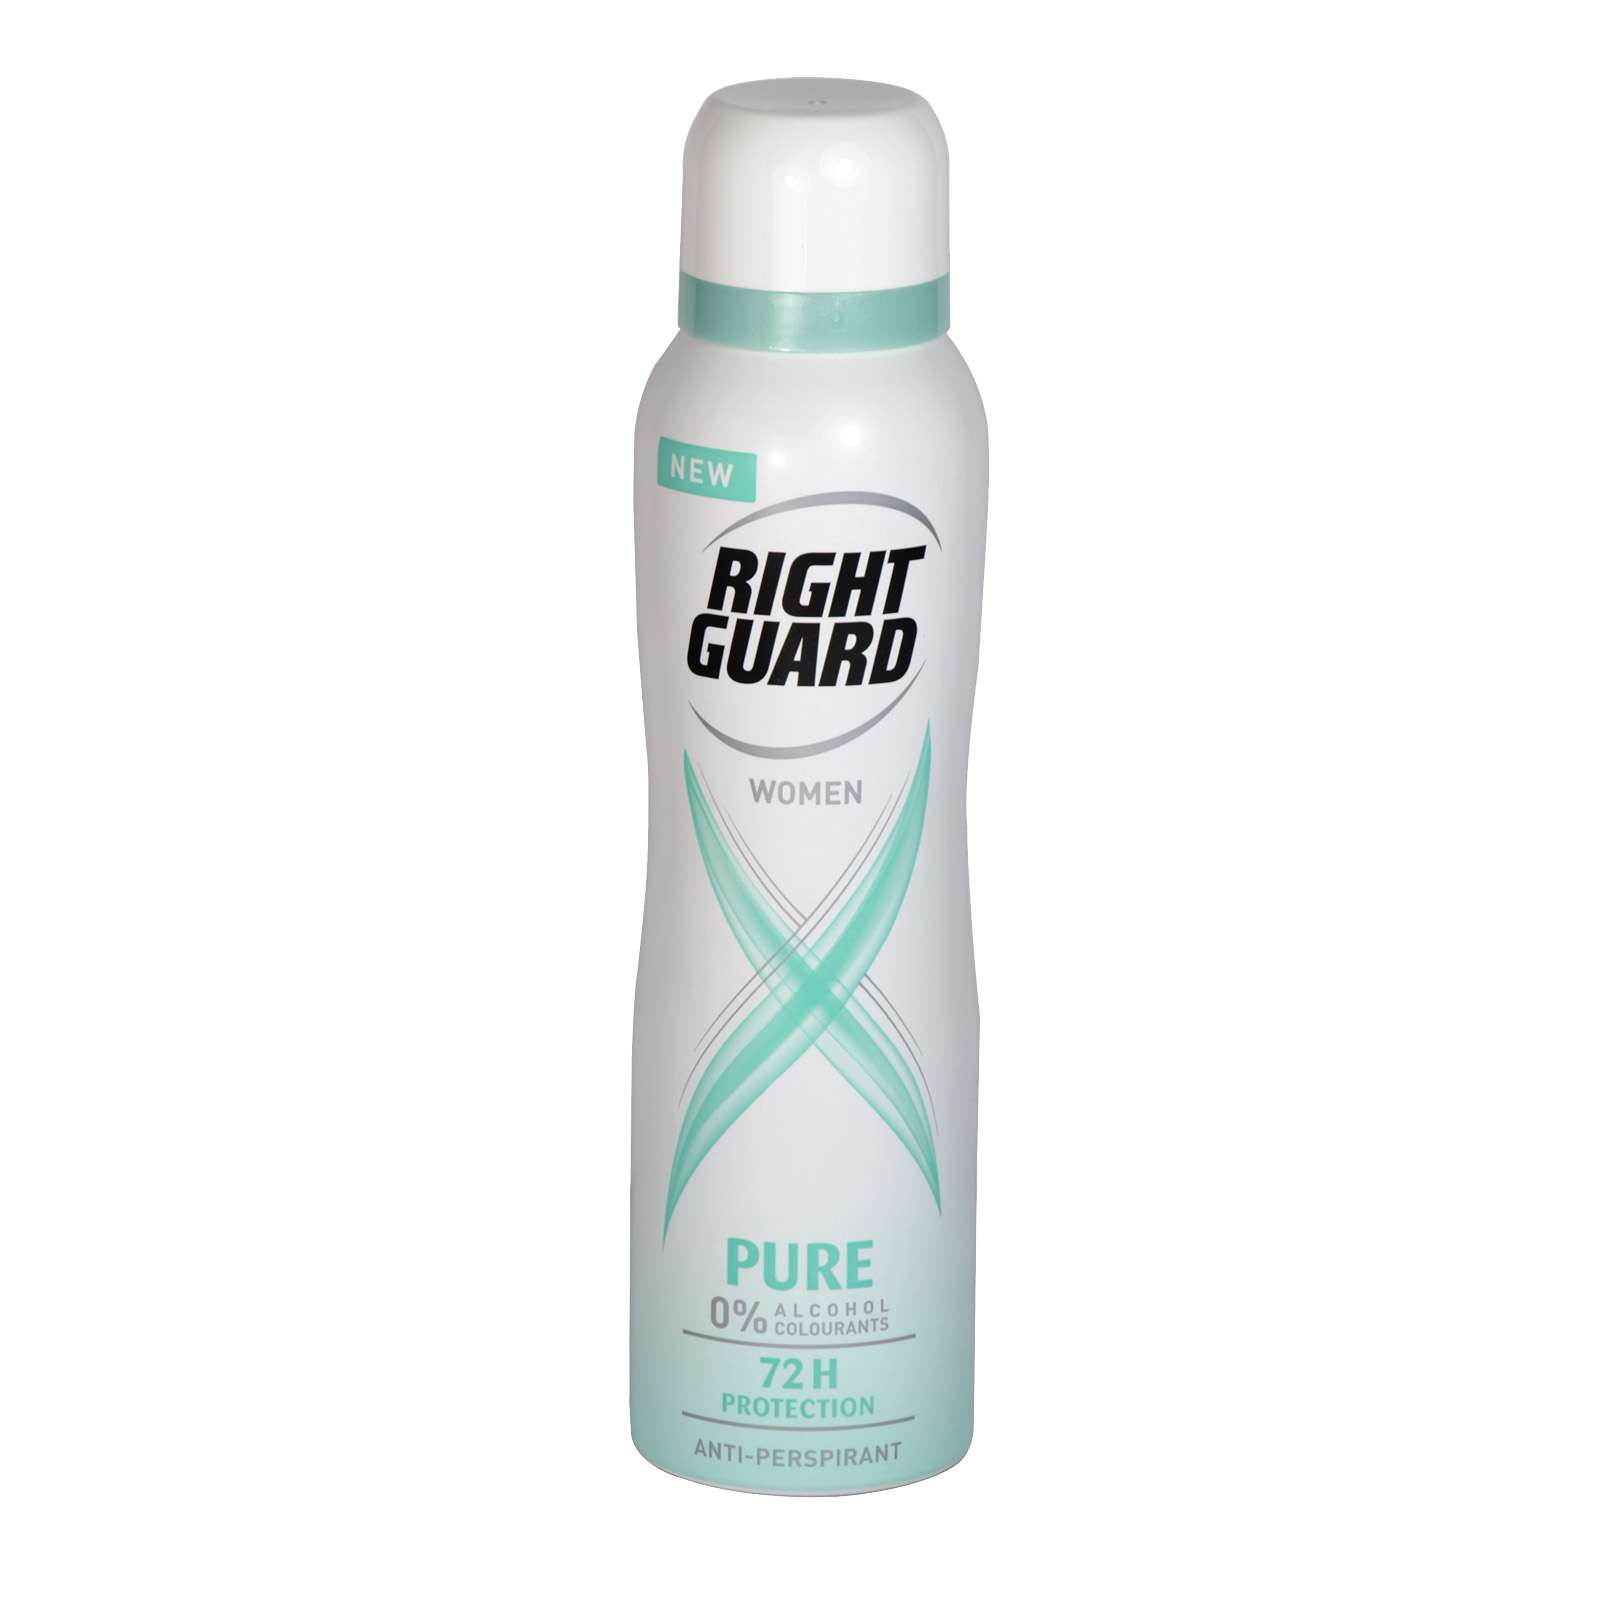 RIGHT GUARD XTREME APA FOR WOMEN 150ML PURE X6